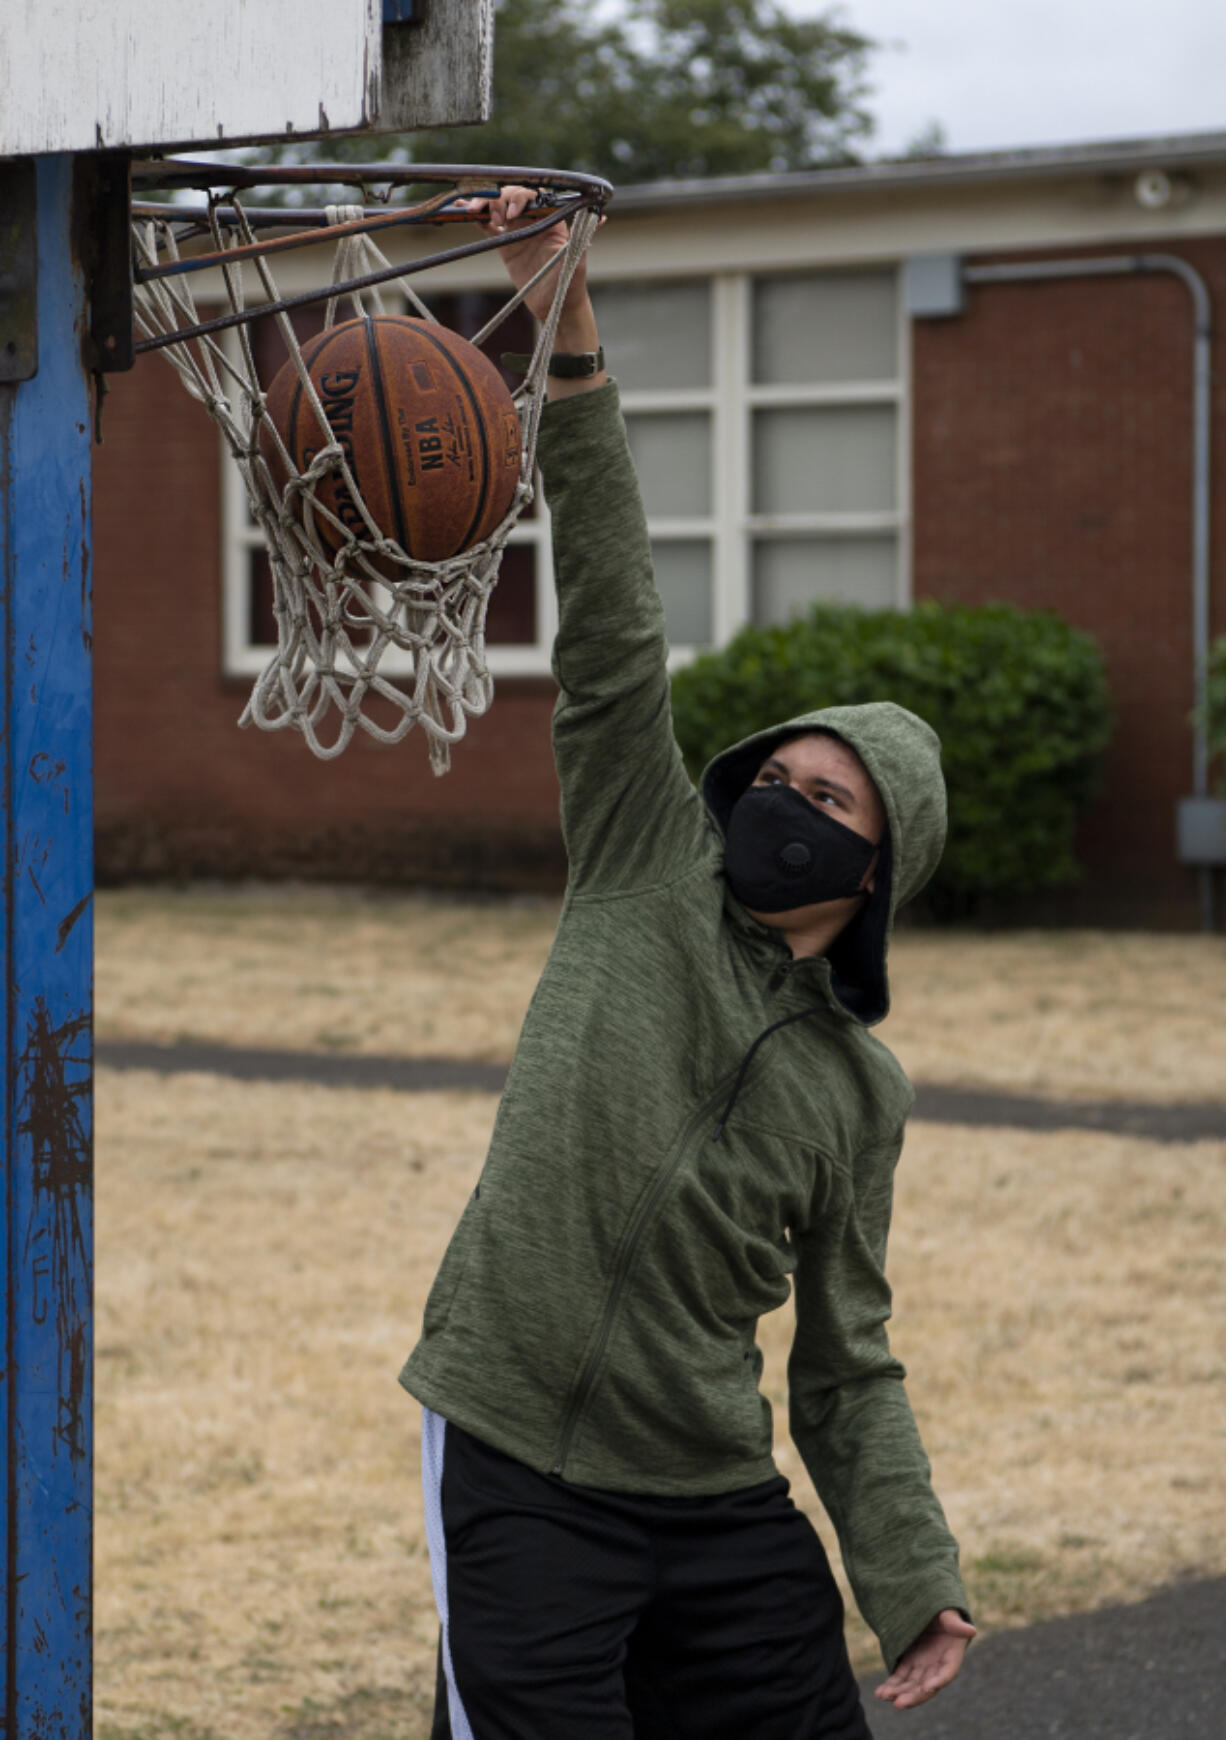 Roane Vanderley, 18, dunks a basketball at an Access to Recreation camp on Tuesday.